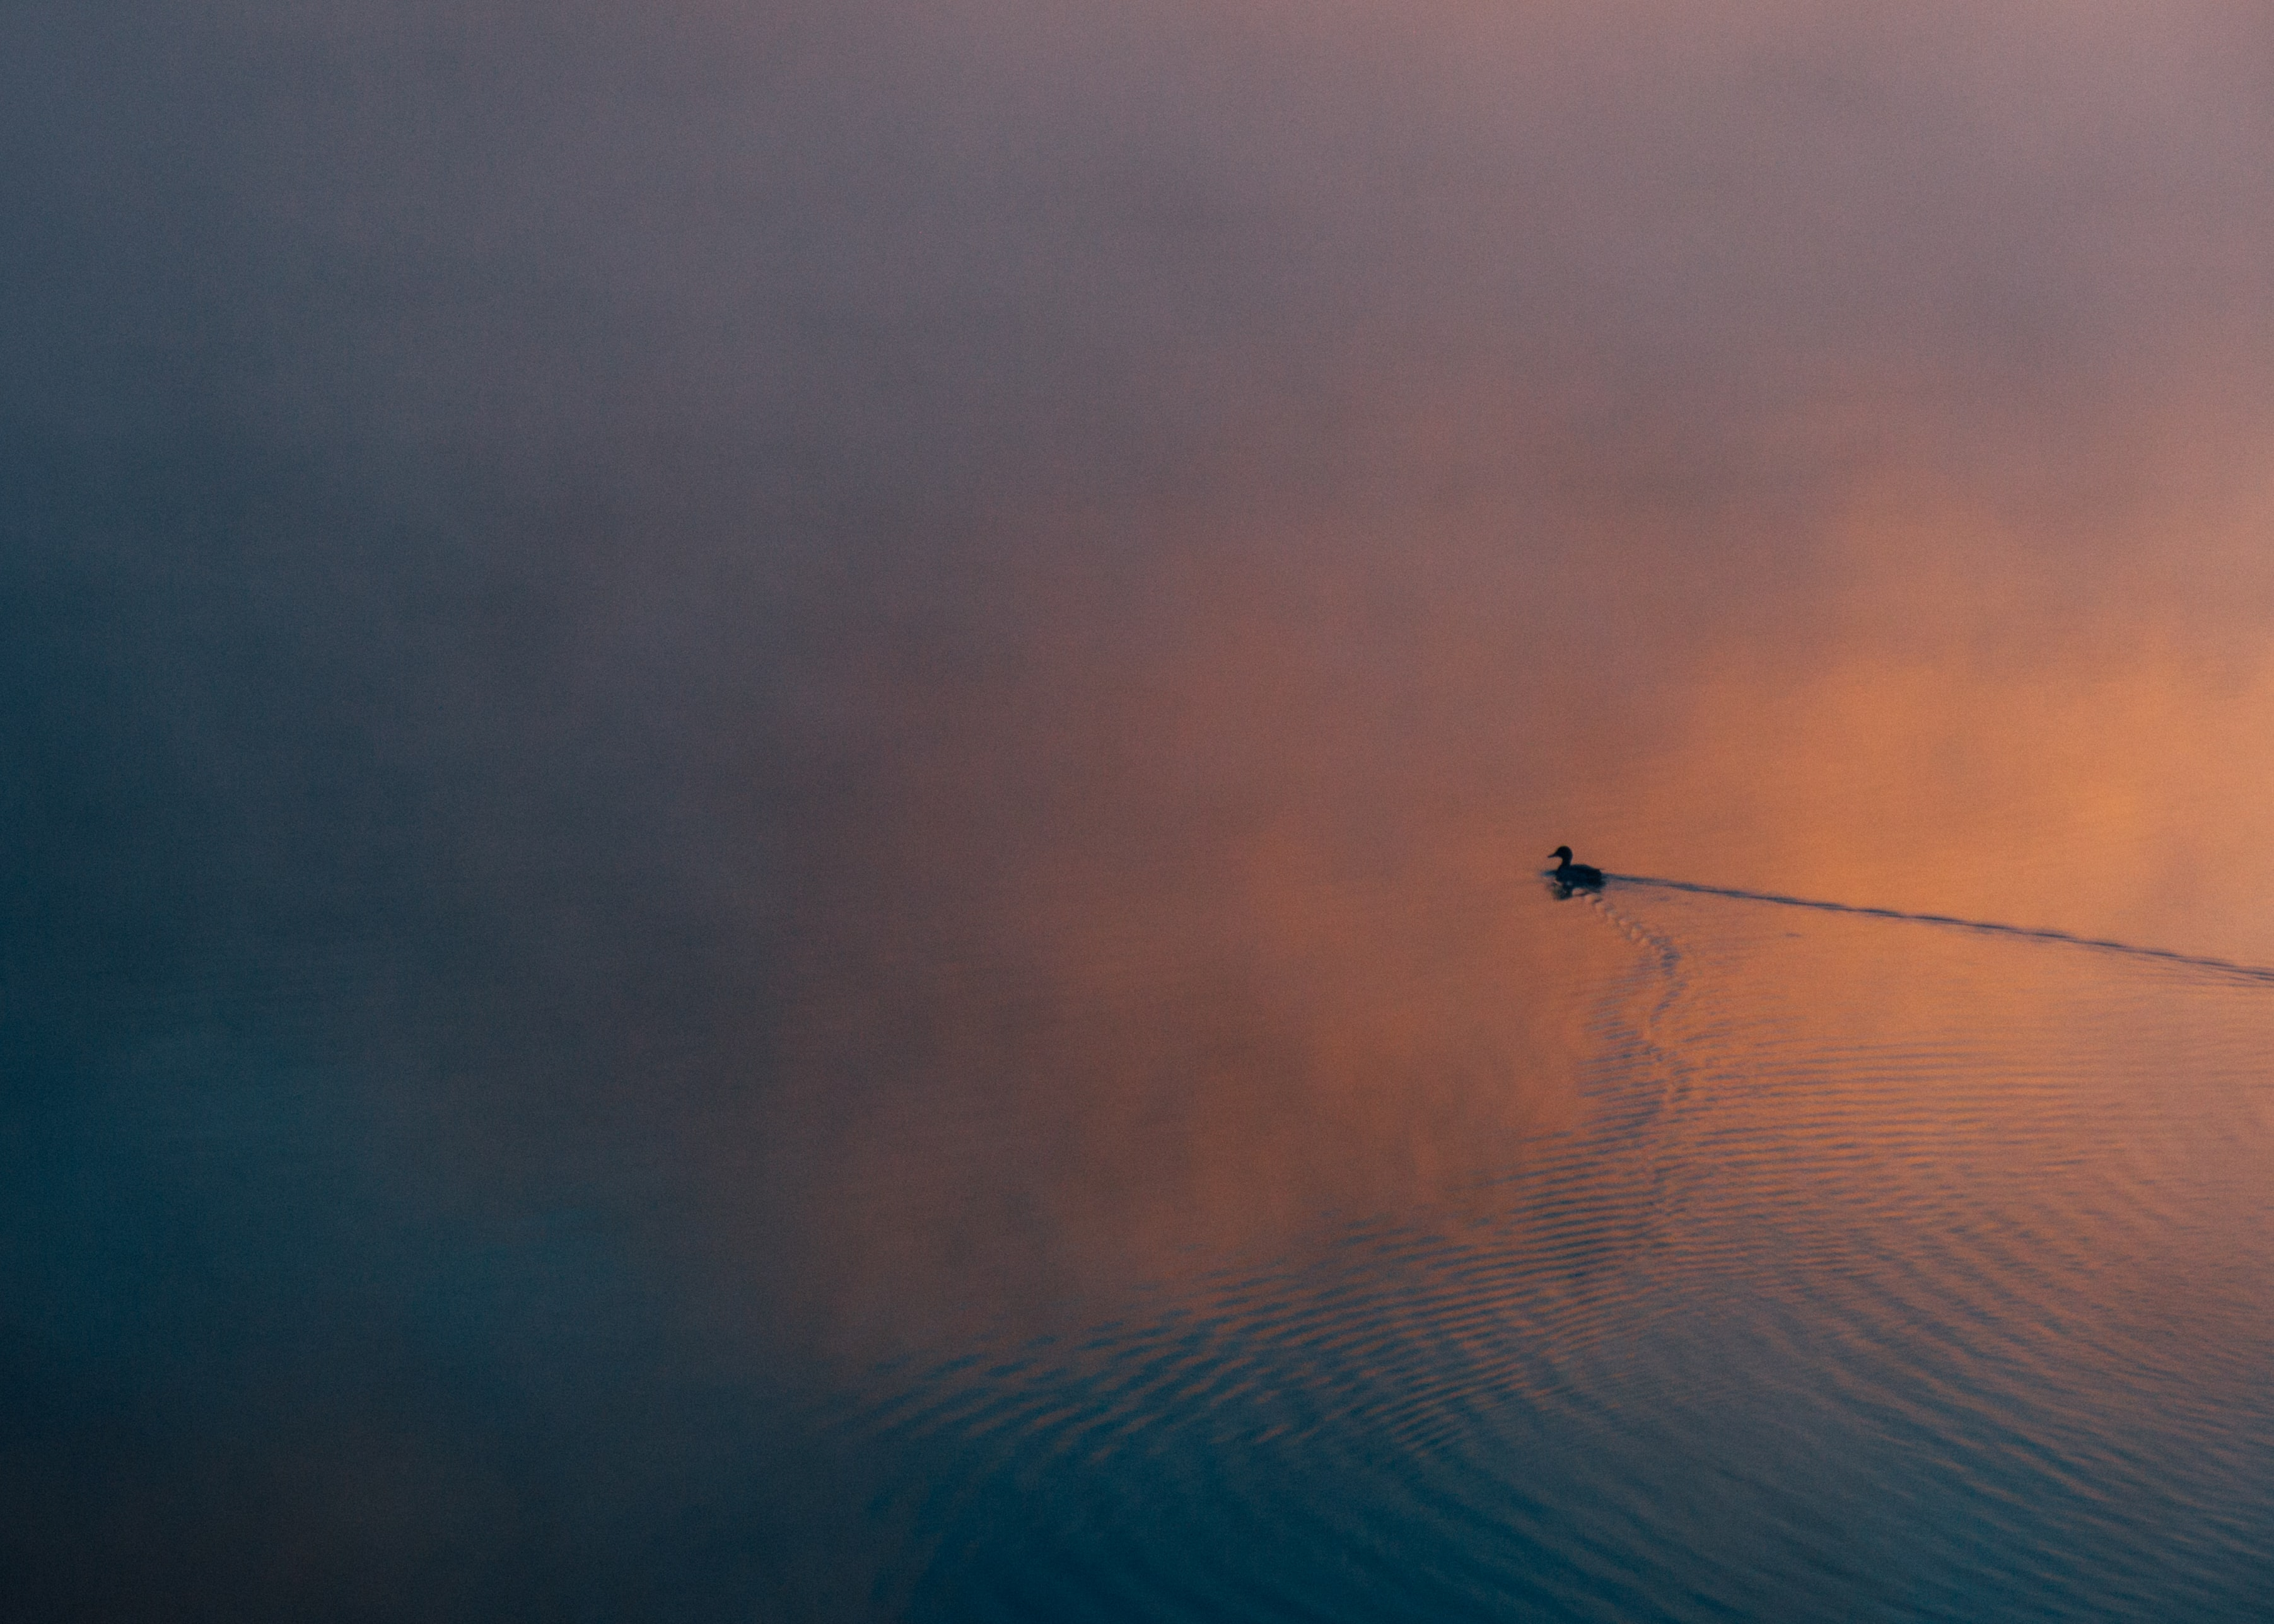 Silhouette of dusk swimming through a calm, misty lake on a colorful evening